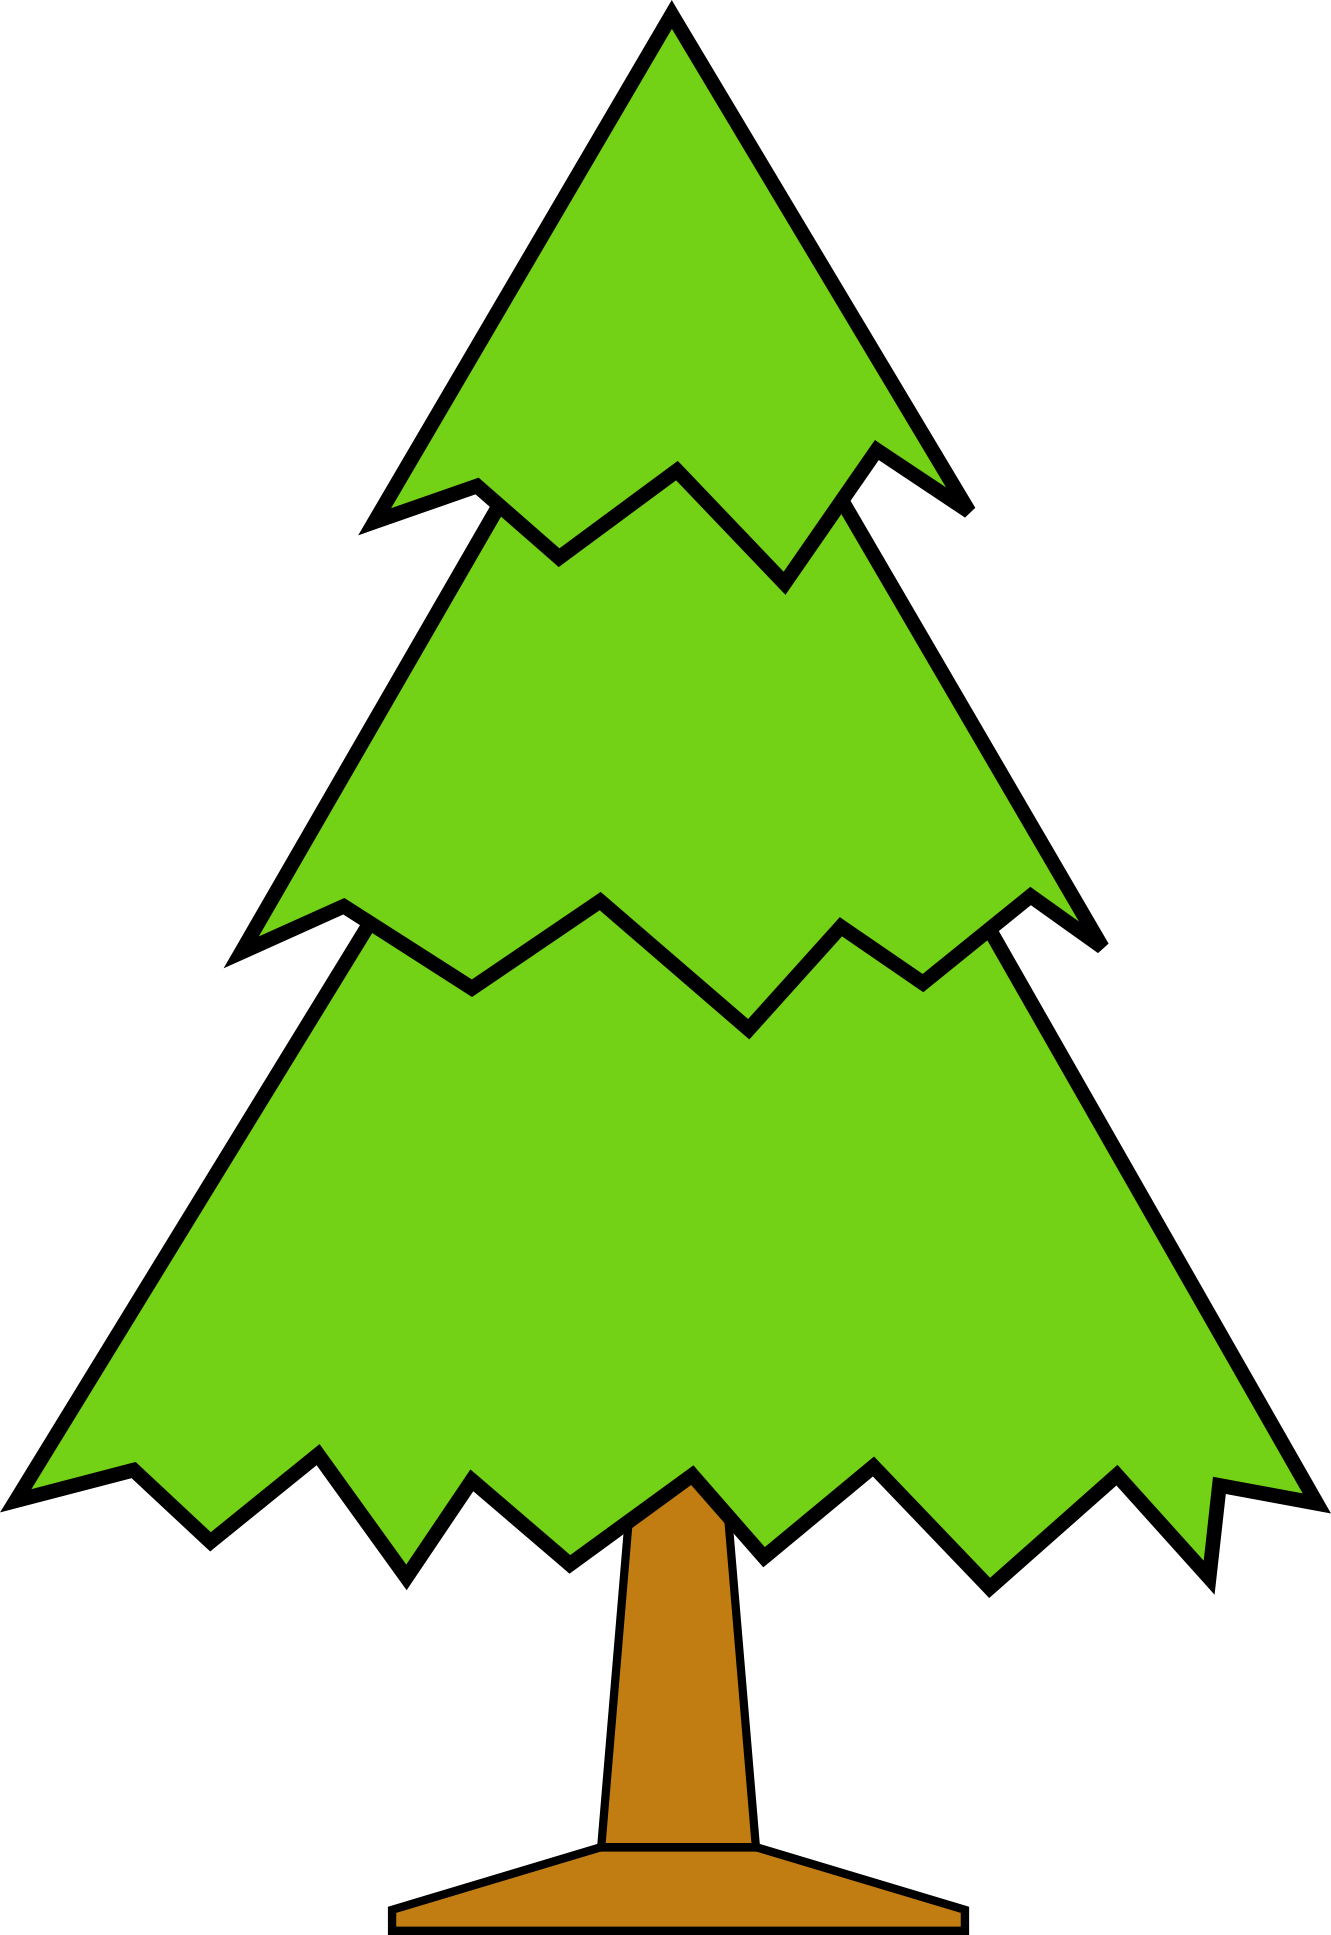 Pinetree vector alpine tree. Pine clipart at getdrawings